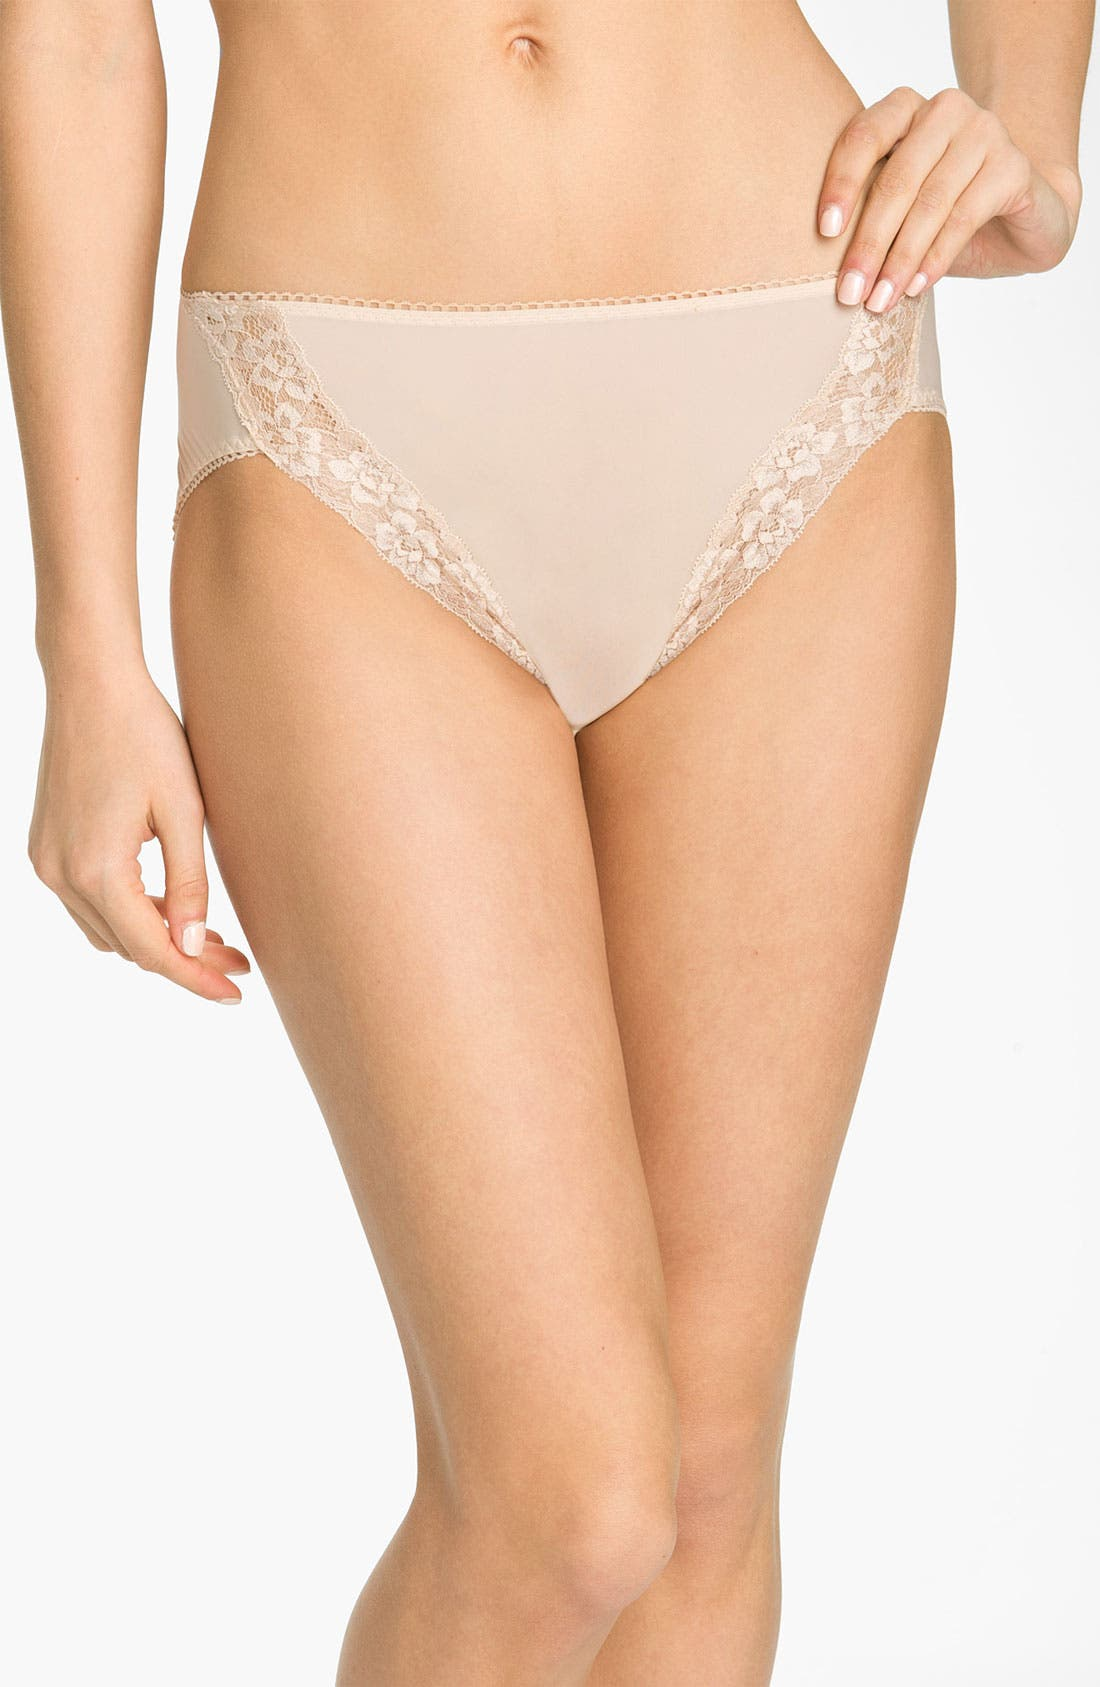 Main Image - Wacoal 'Bodysuede' Lace Trim High Cut Briefs (3 for $45)